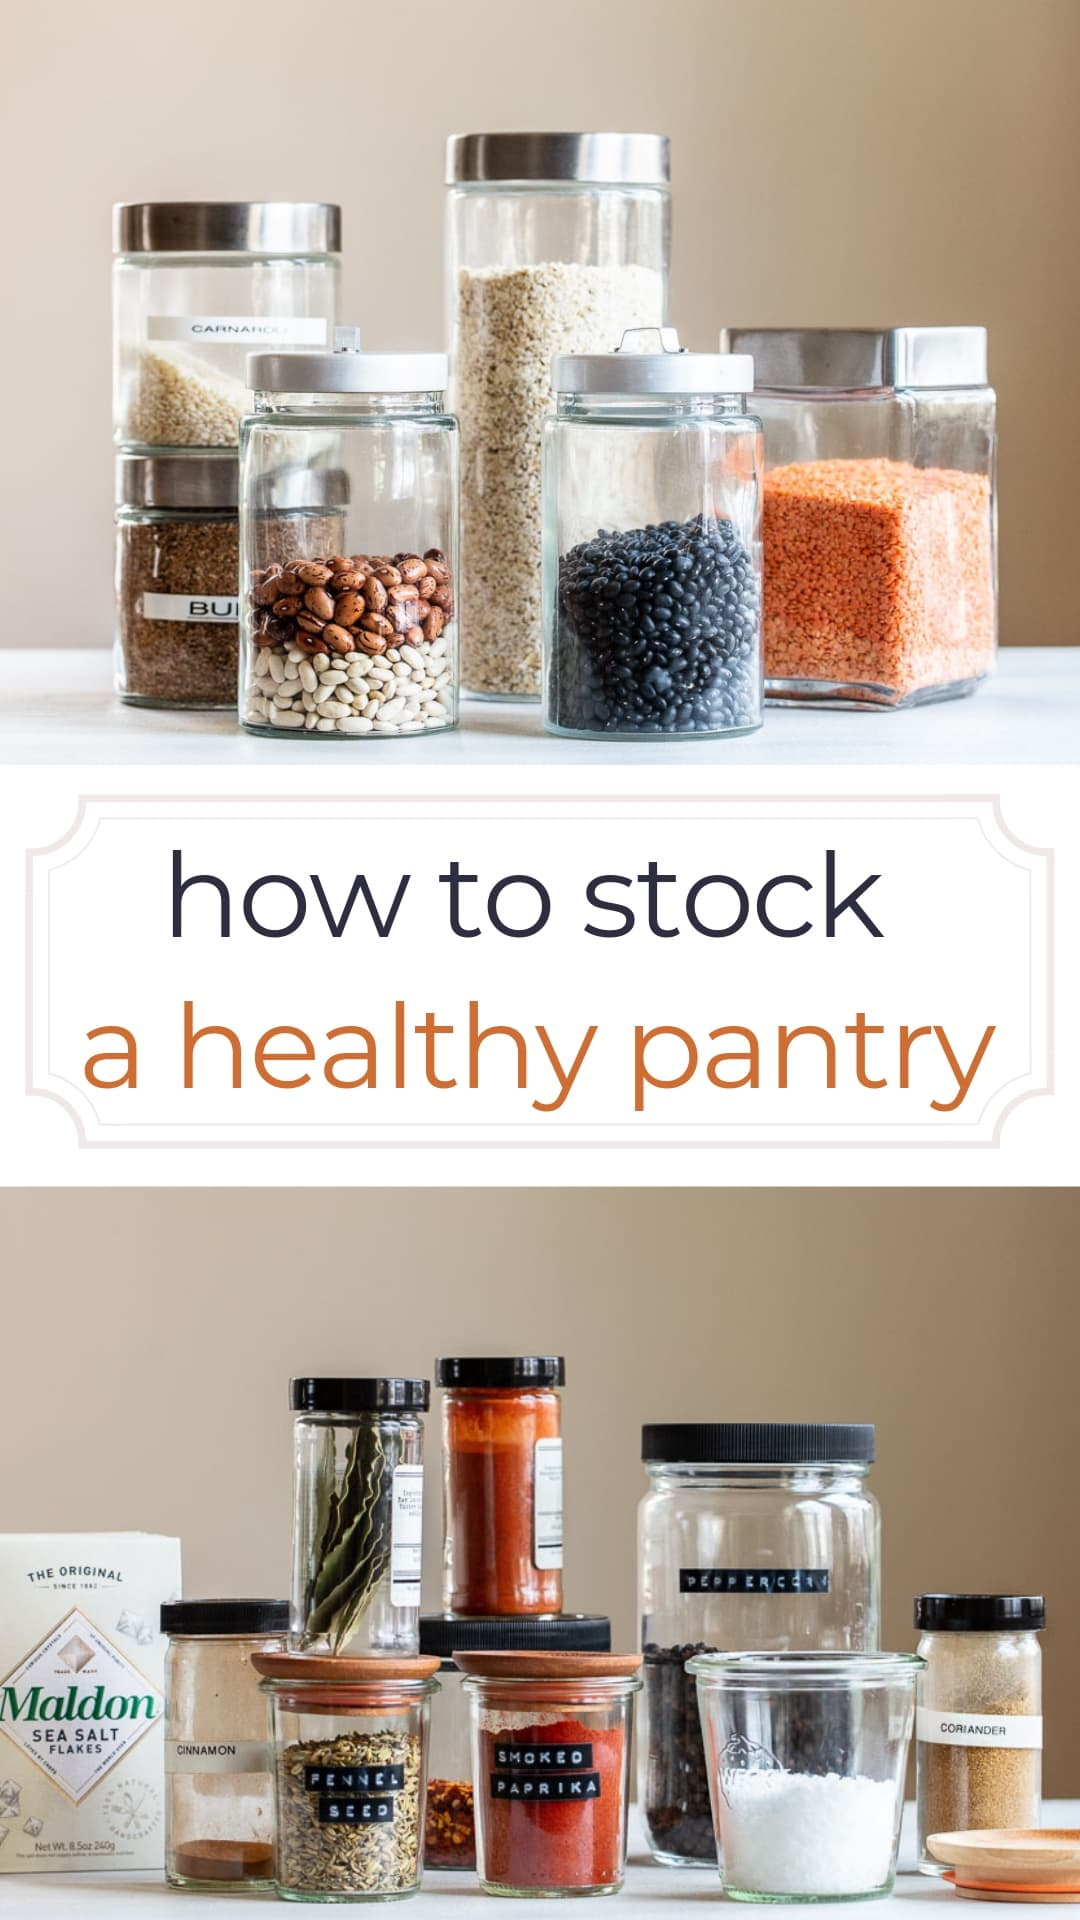 How to Stock a Basic Healthy Pantry (Printable Checklist)